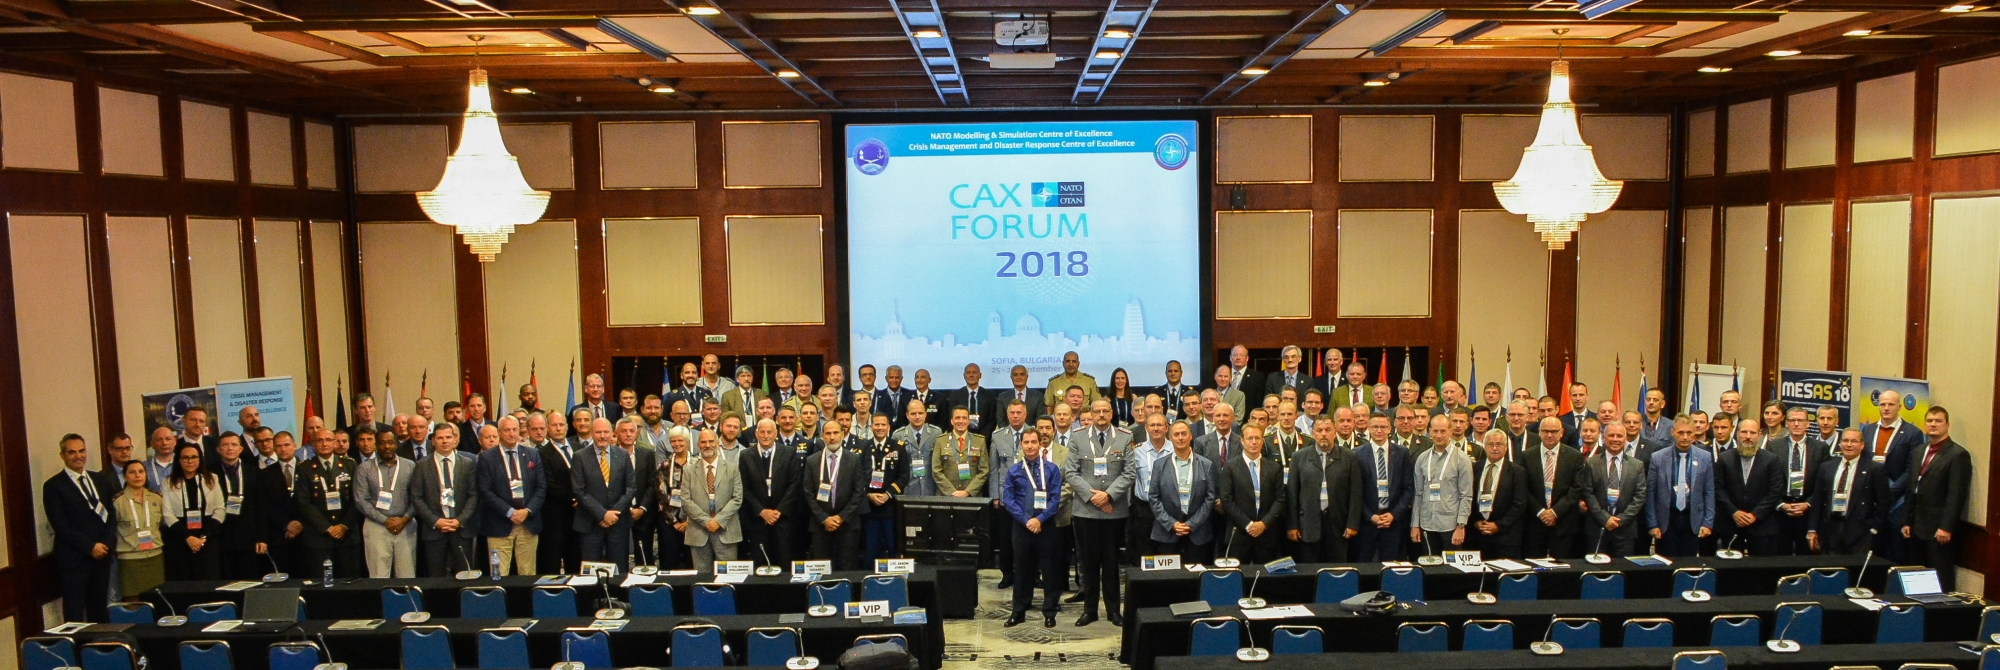 13th NATO Computer Assisted Exercise Forum (NATO CAX Forum 2018)